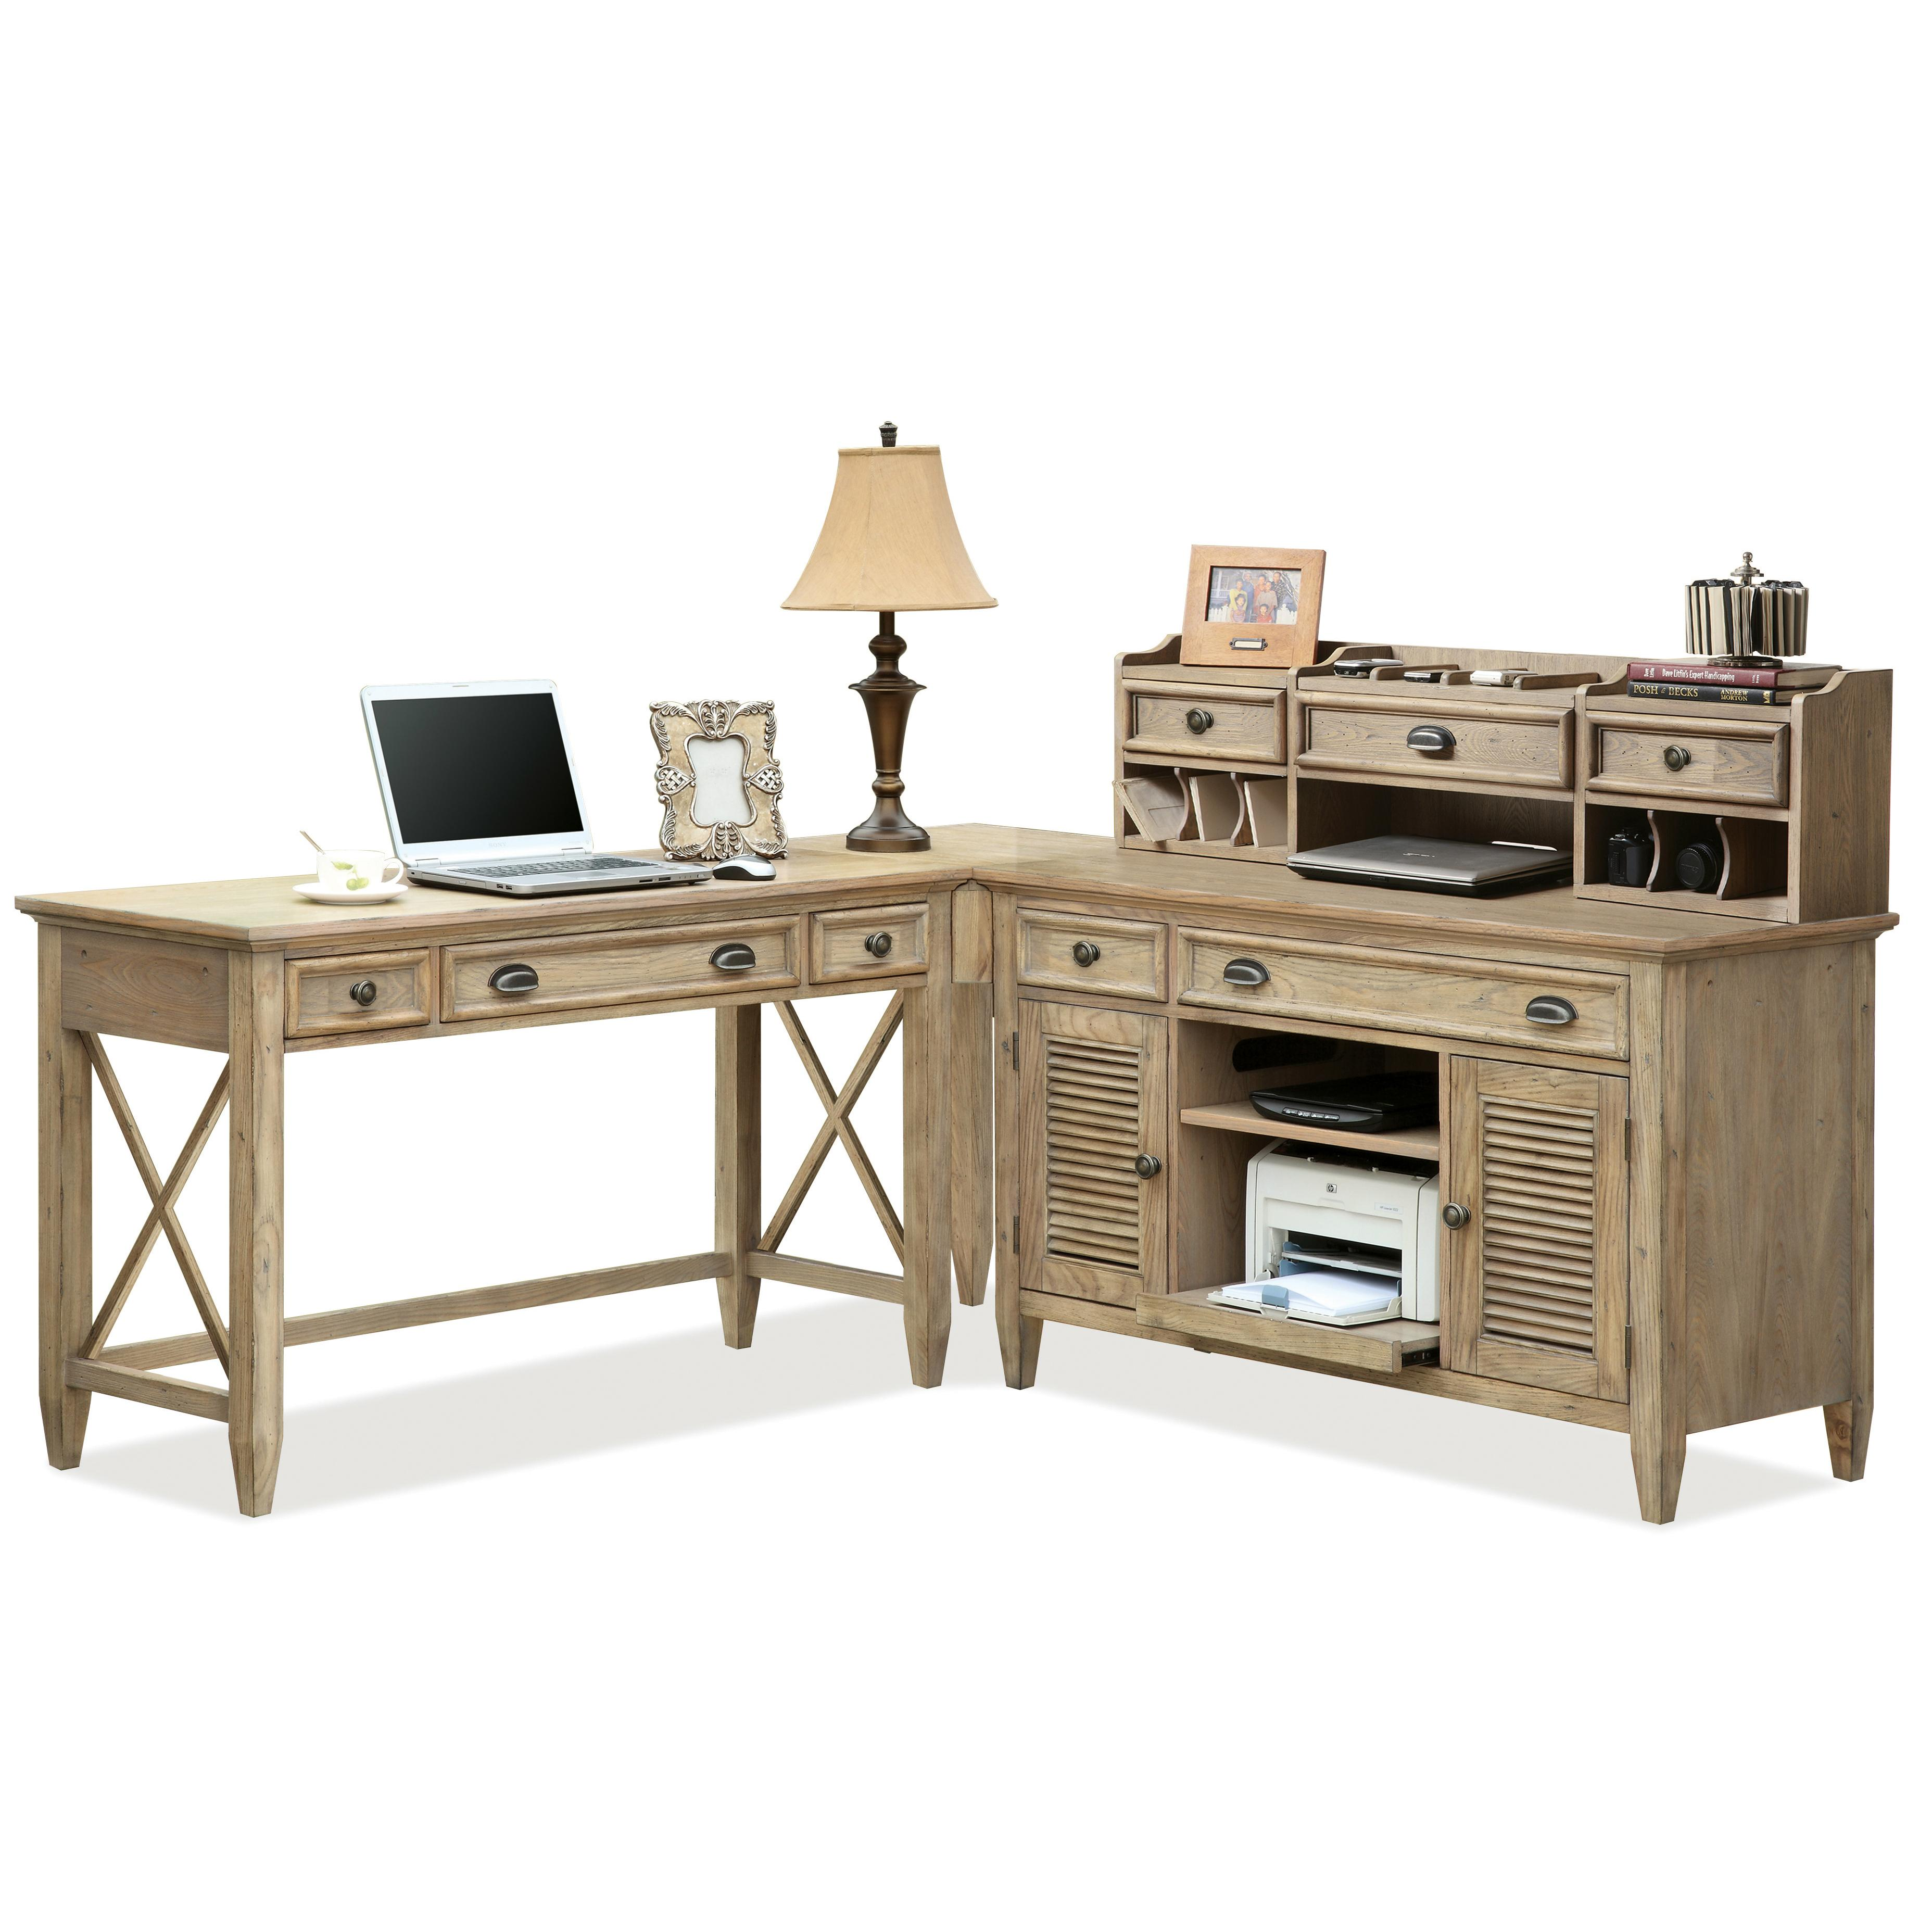 Riverside Furniture Coventry Writing Desk With 3 Drawers Outlet Powerbar Belfort Furniture